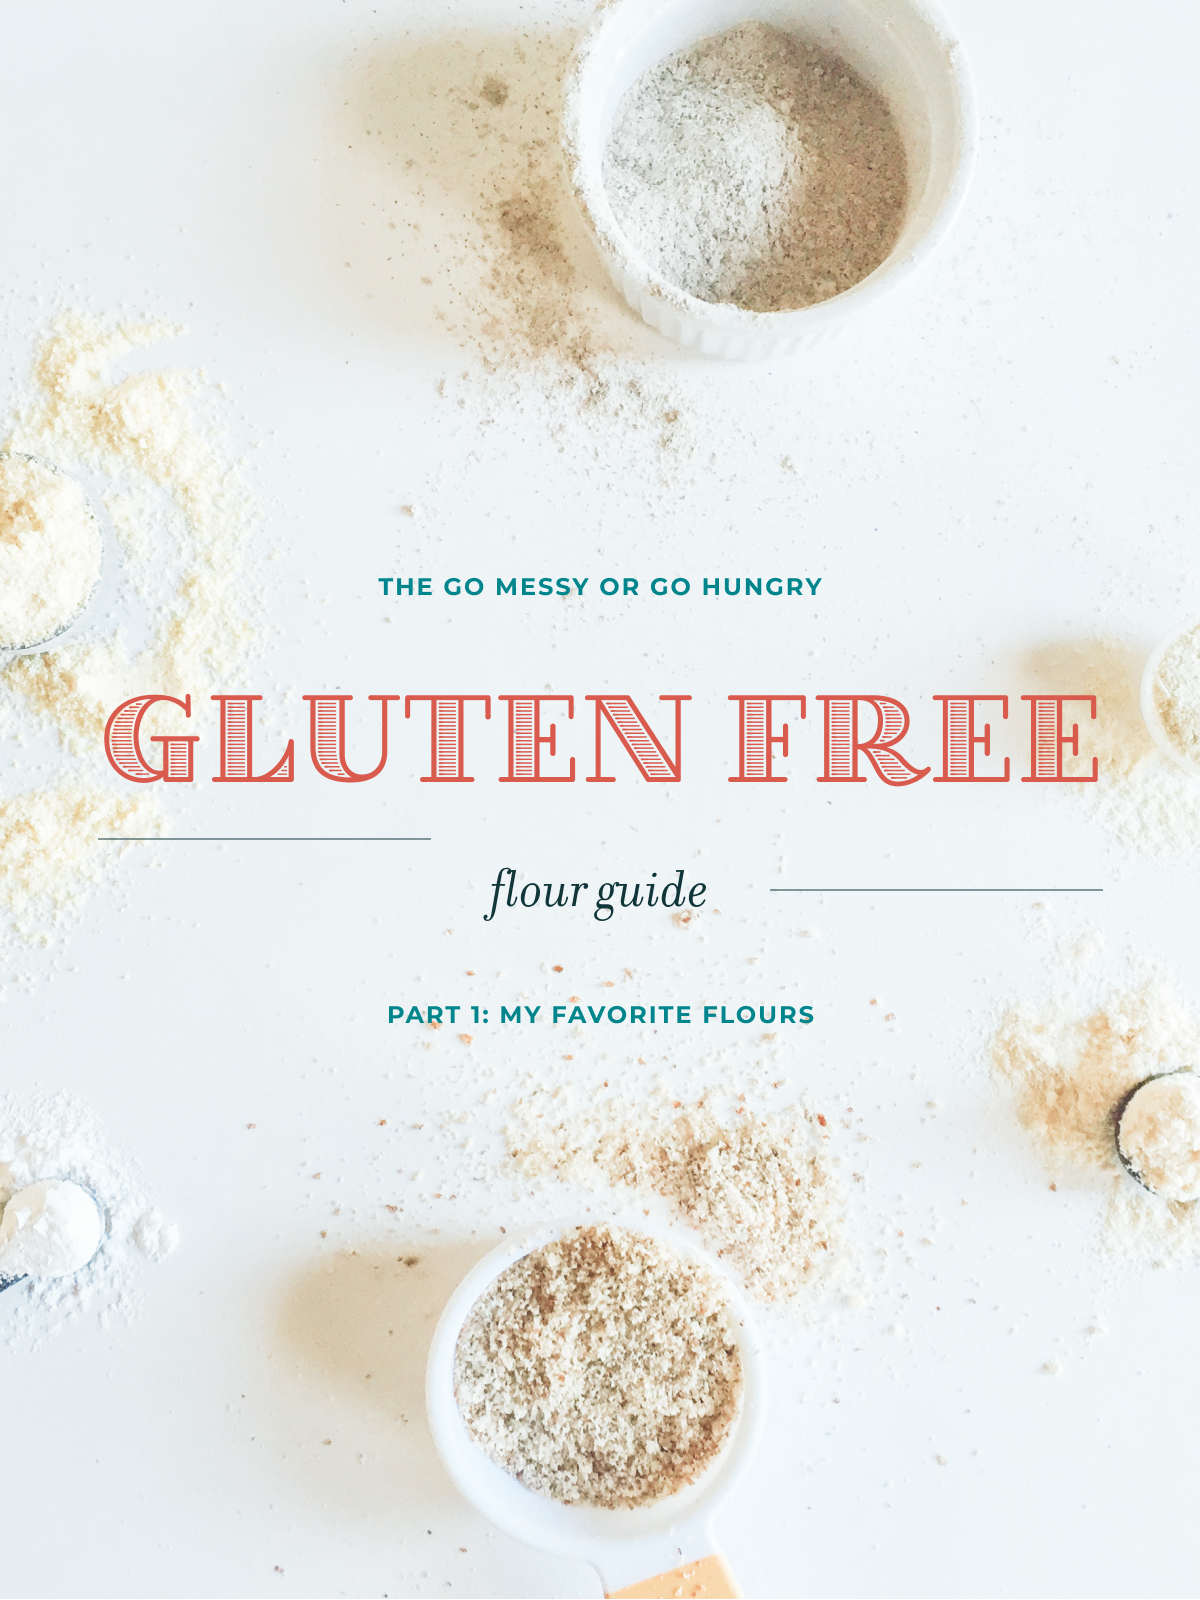 Gluten Free Flour Guide Part 1: The 5 Essential Flours | Go Messy or Go Hungry